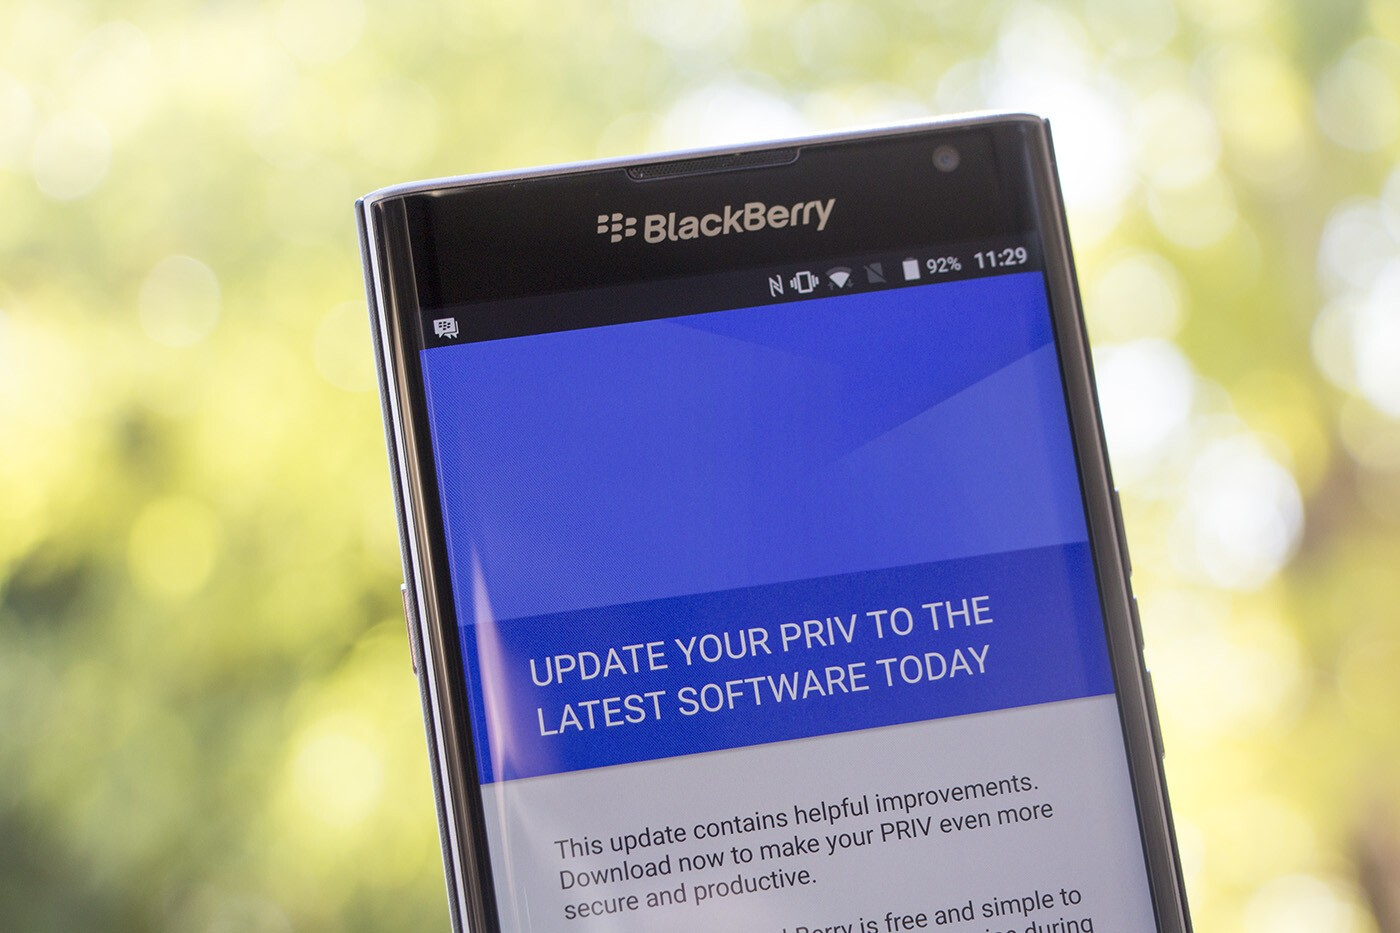 BlackBerry continues to beat expectations with security patches on the Priv